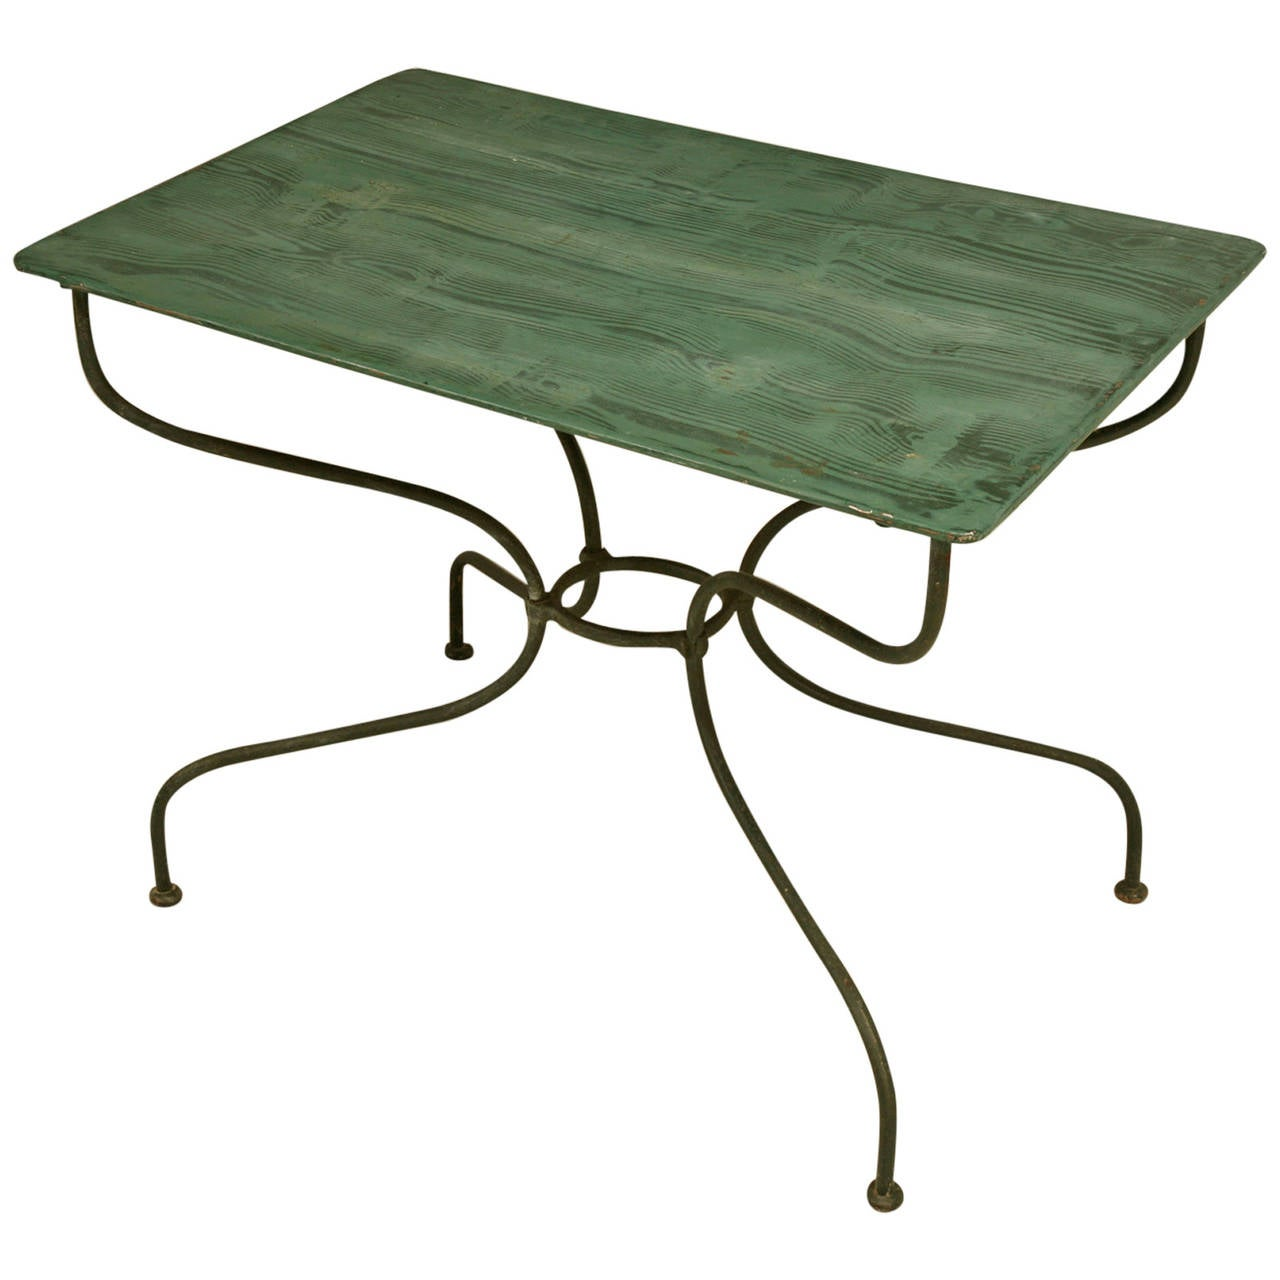 French Vintage Garden Or Kitchen Metal Table At 1stdibs